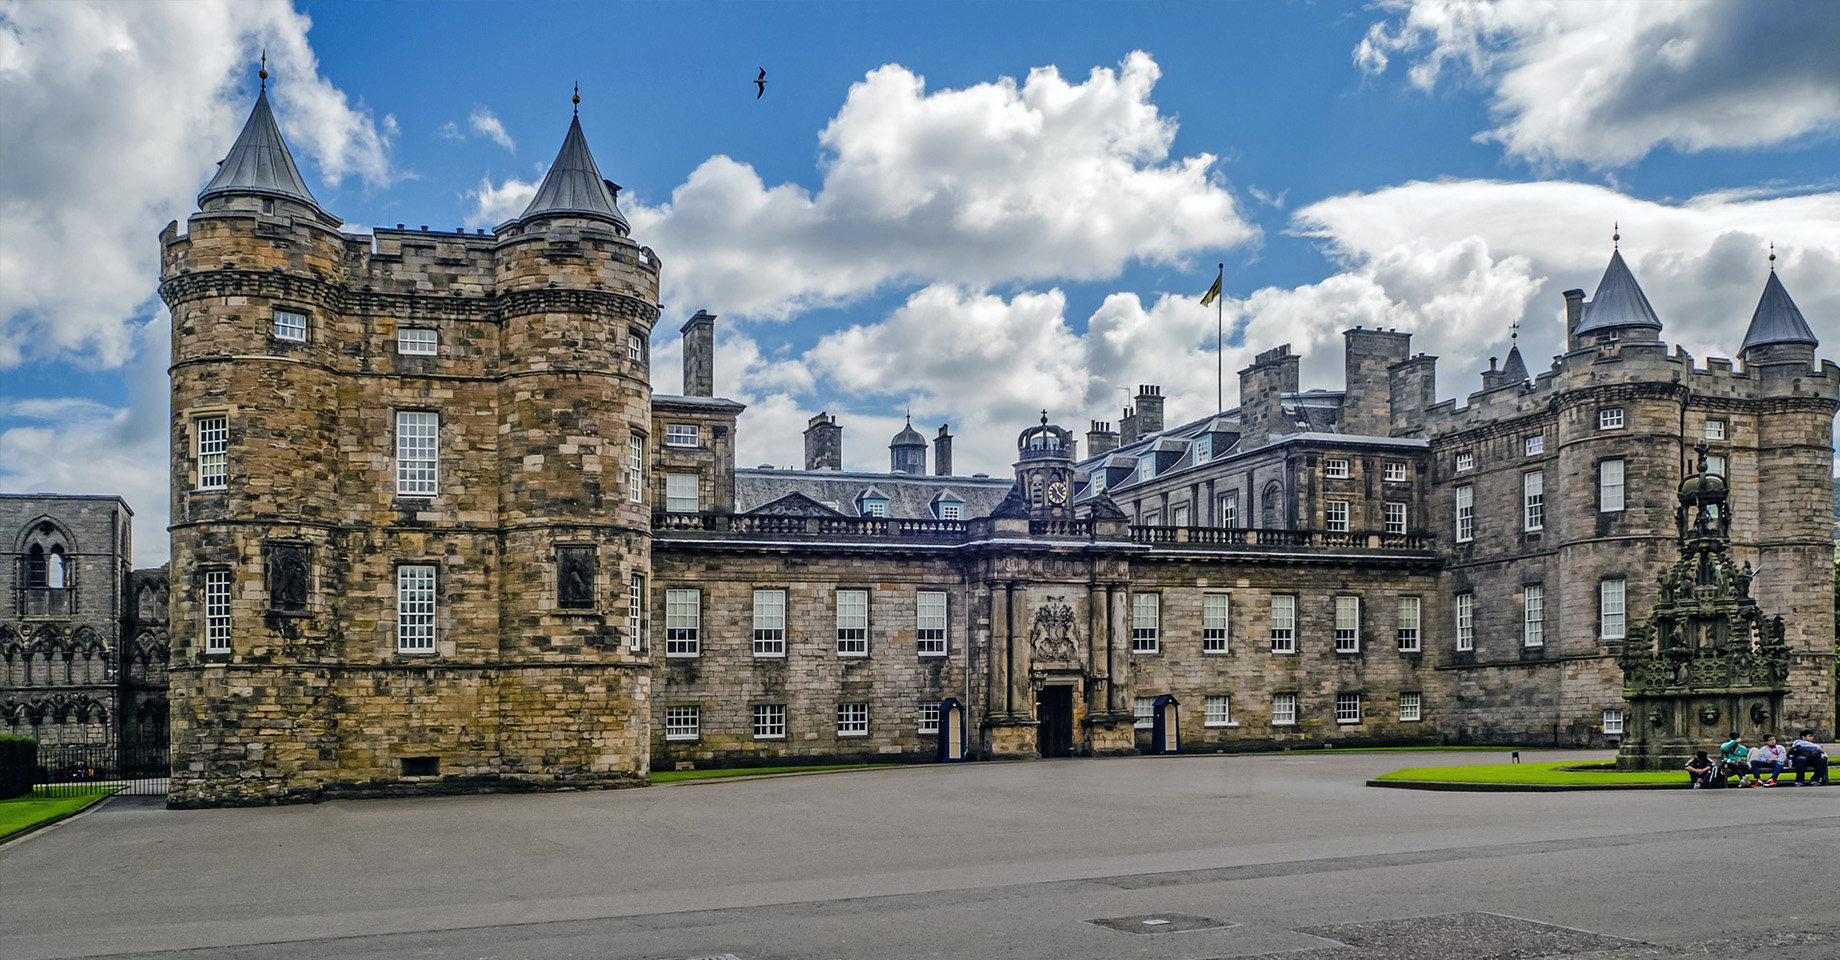 The Palace of Holyroodhouse is the official residence of the Monarchy in Scotland